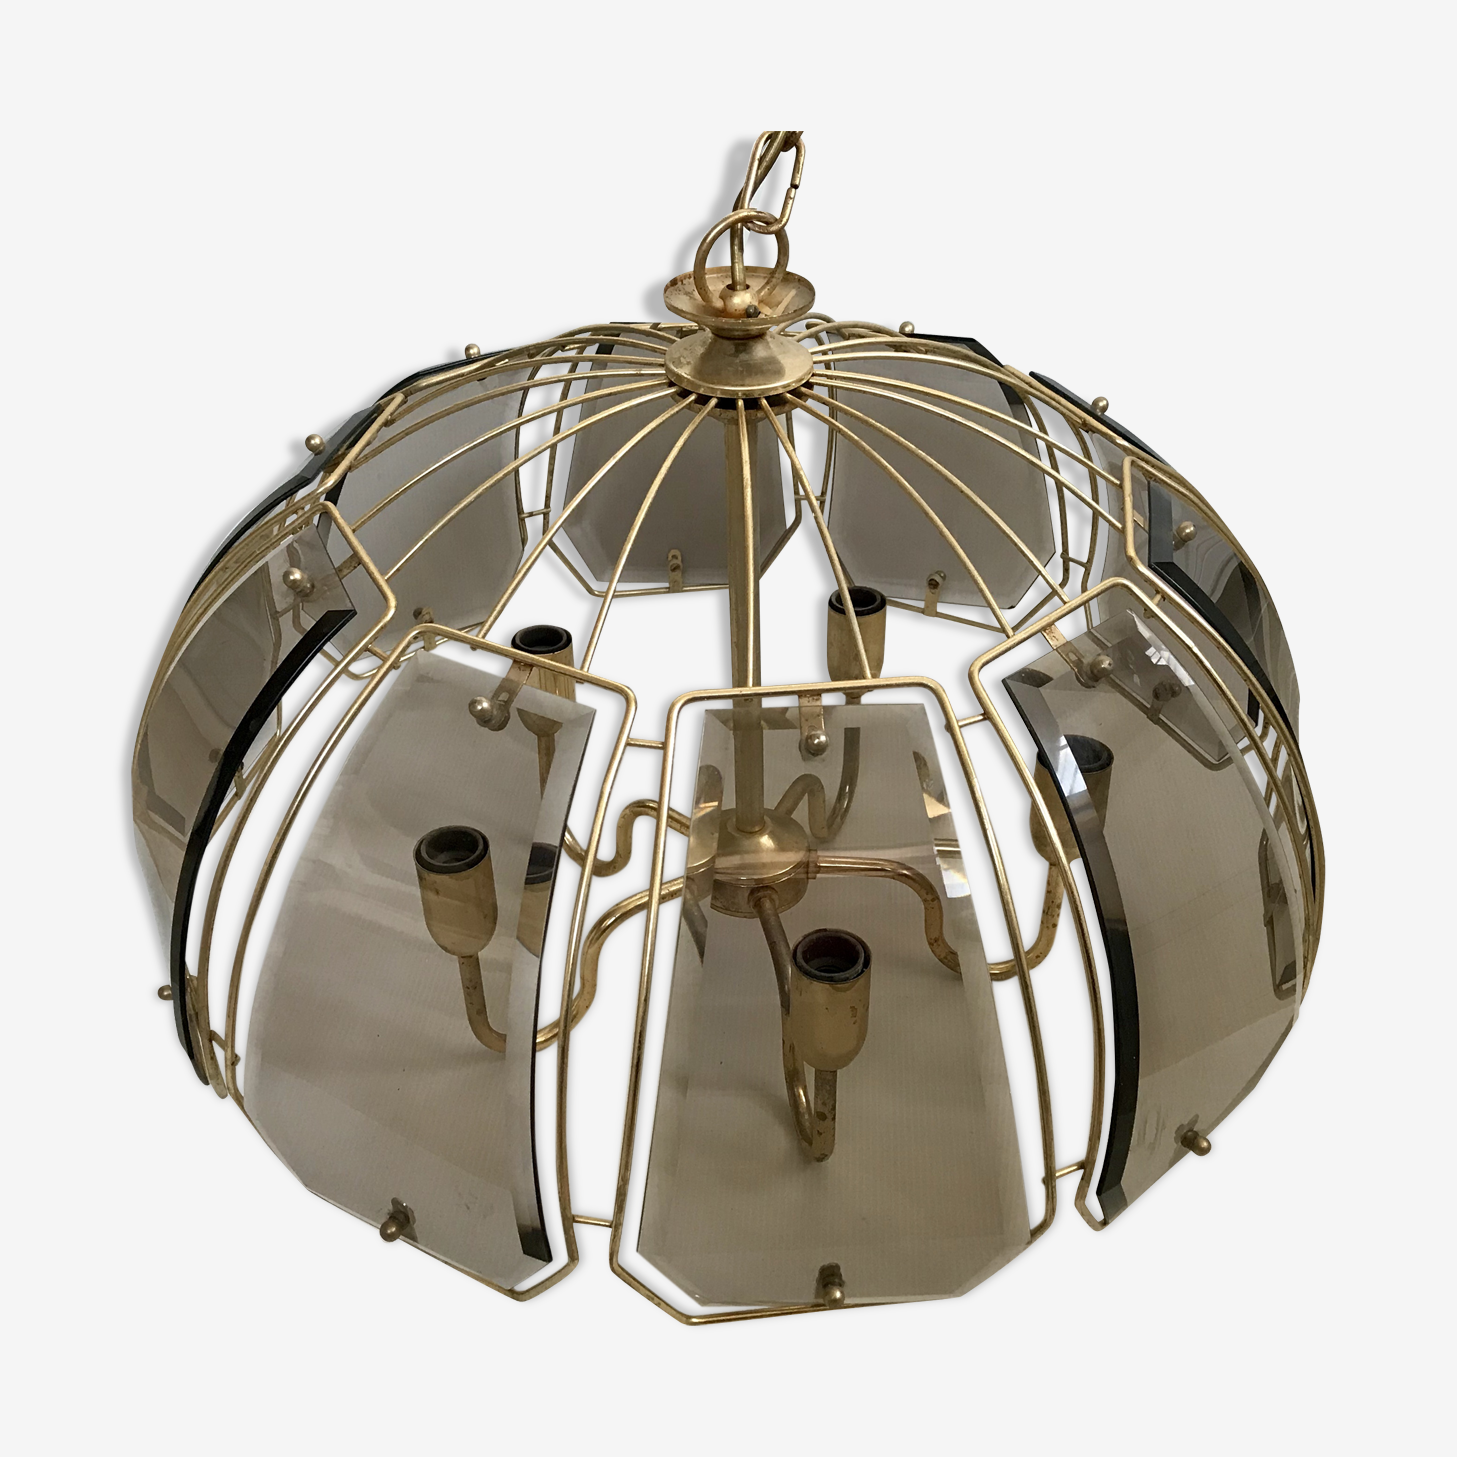 Vintage smoked glass ceiling light